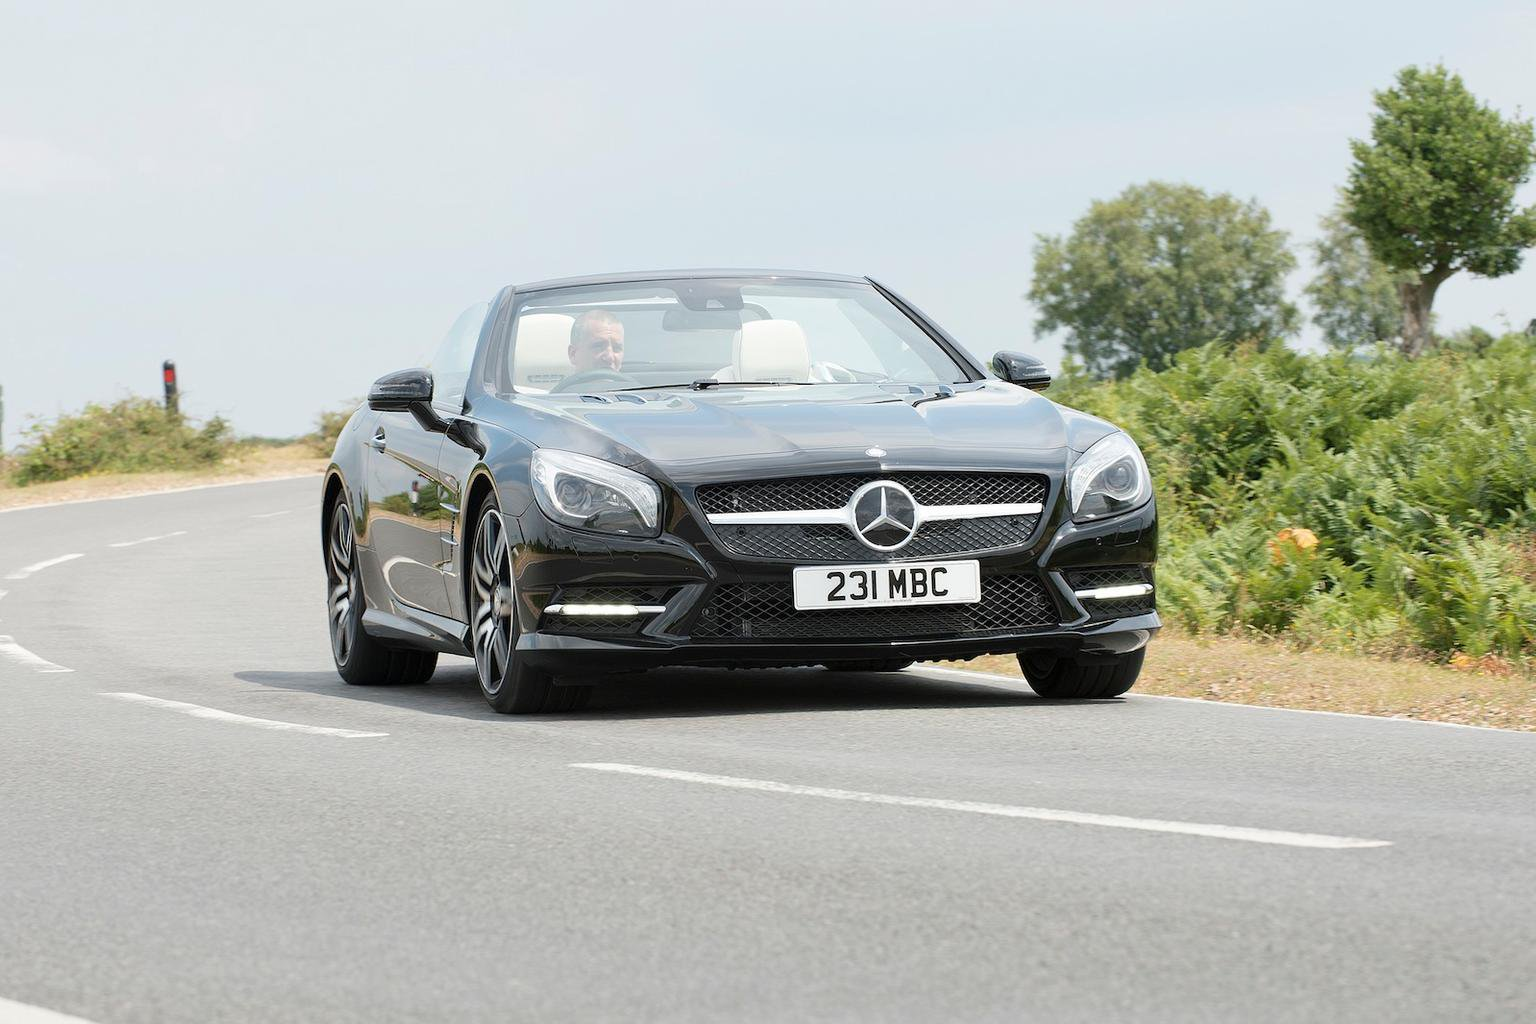 2014 Mercedes SL400 review